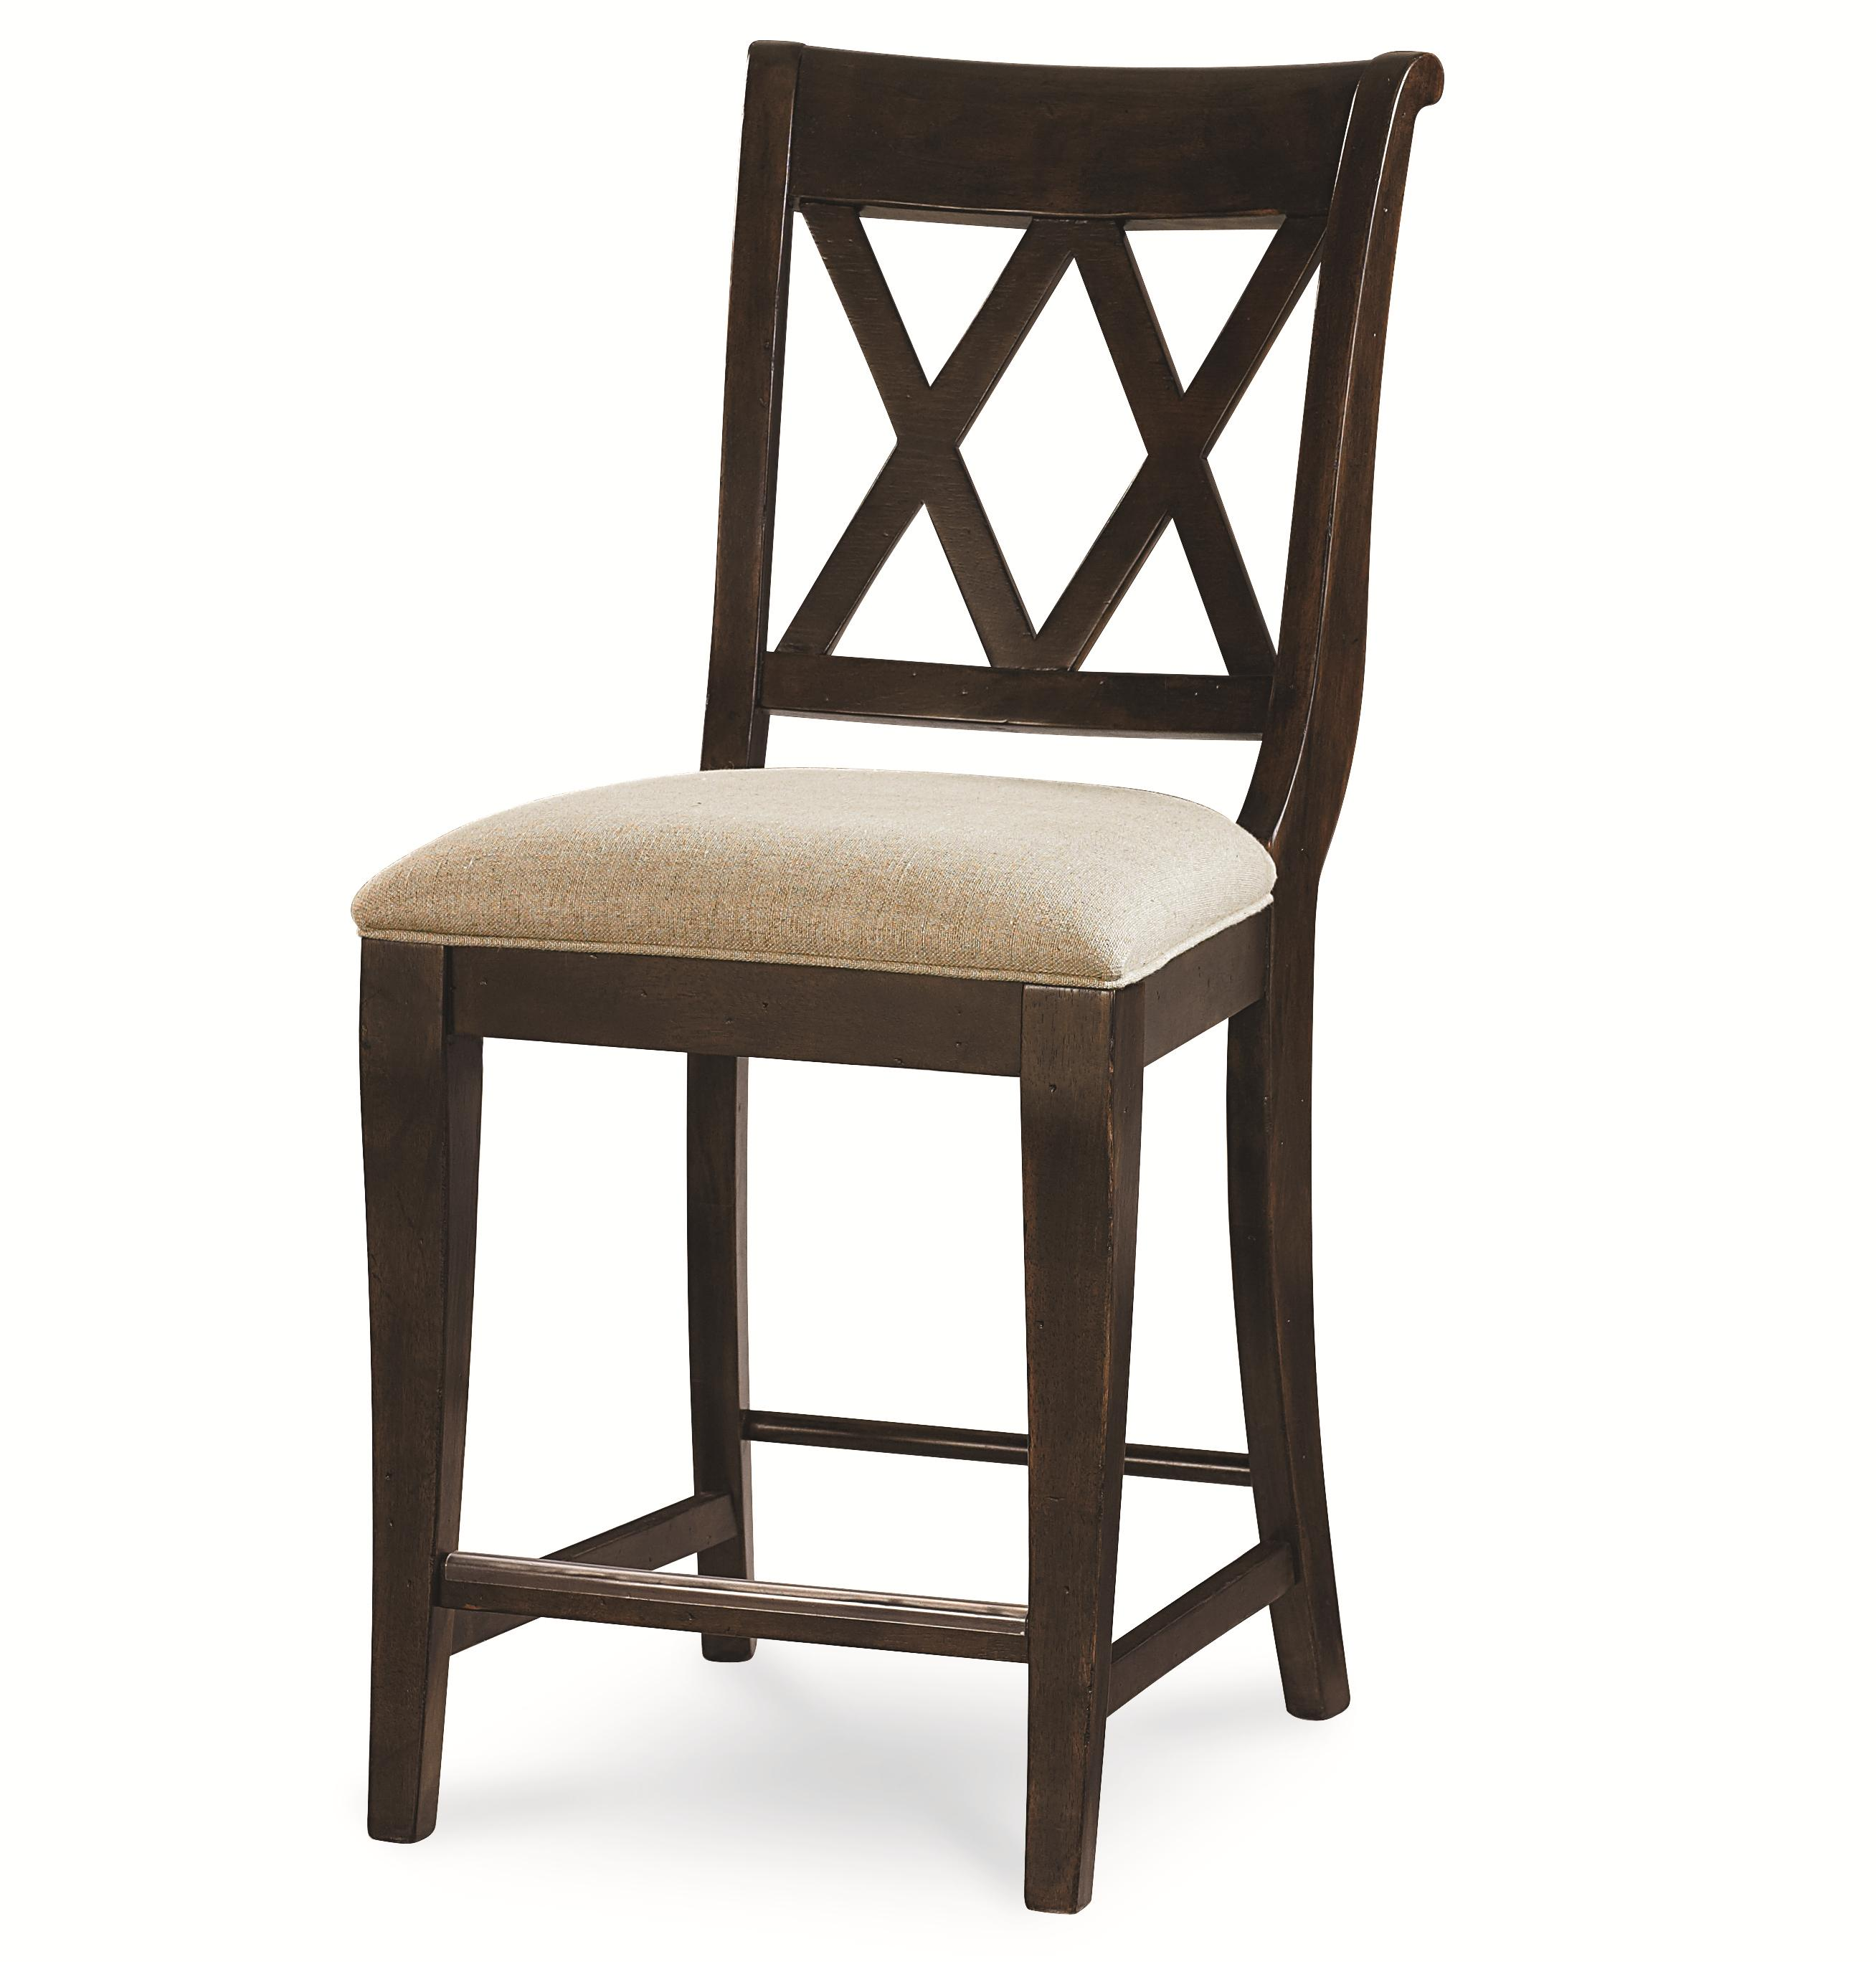 Legacy Classic Thatcher Pub Chair - Item Number: 3700-945 KD